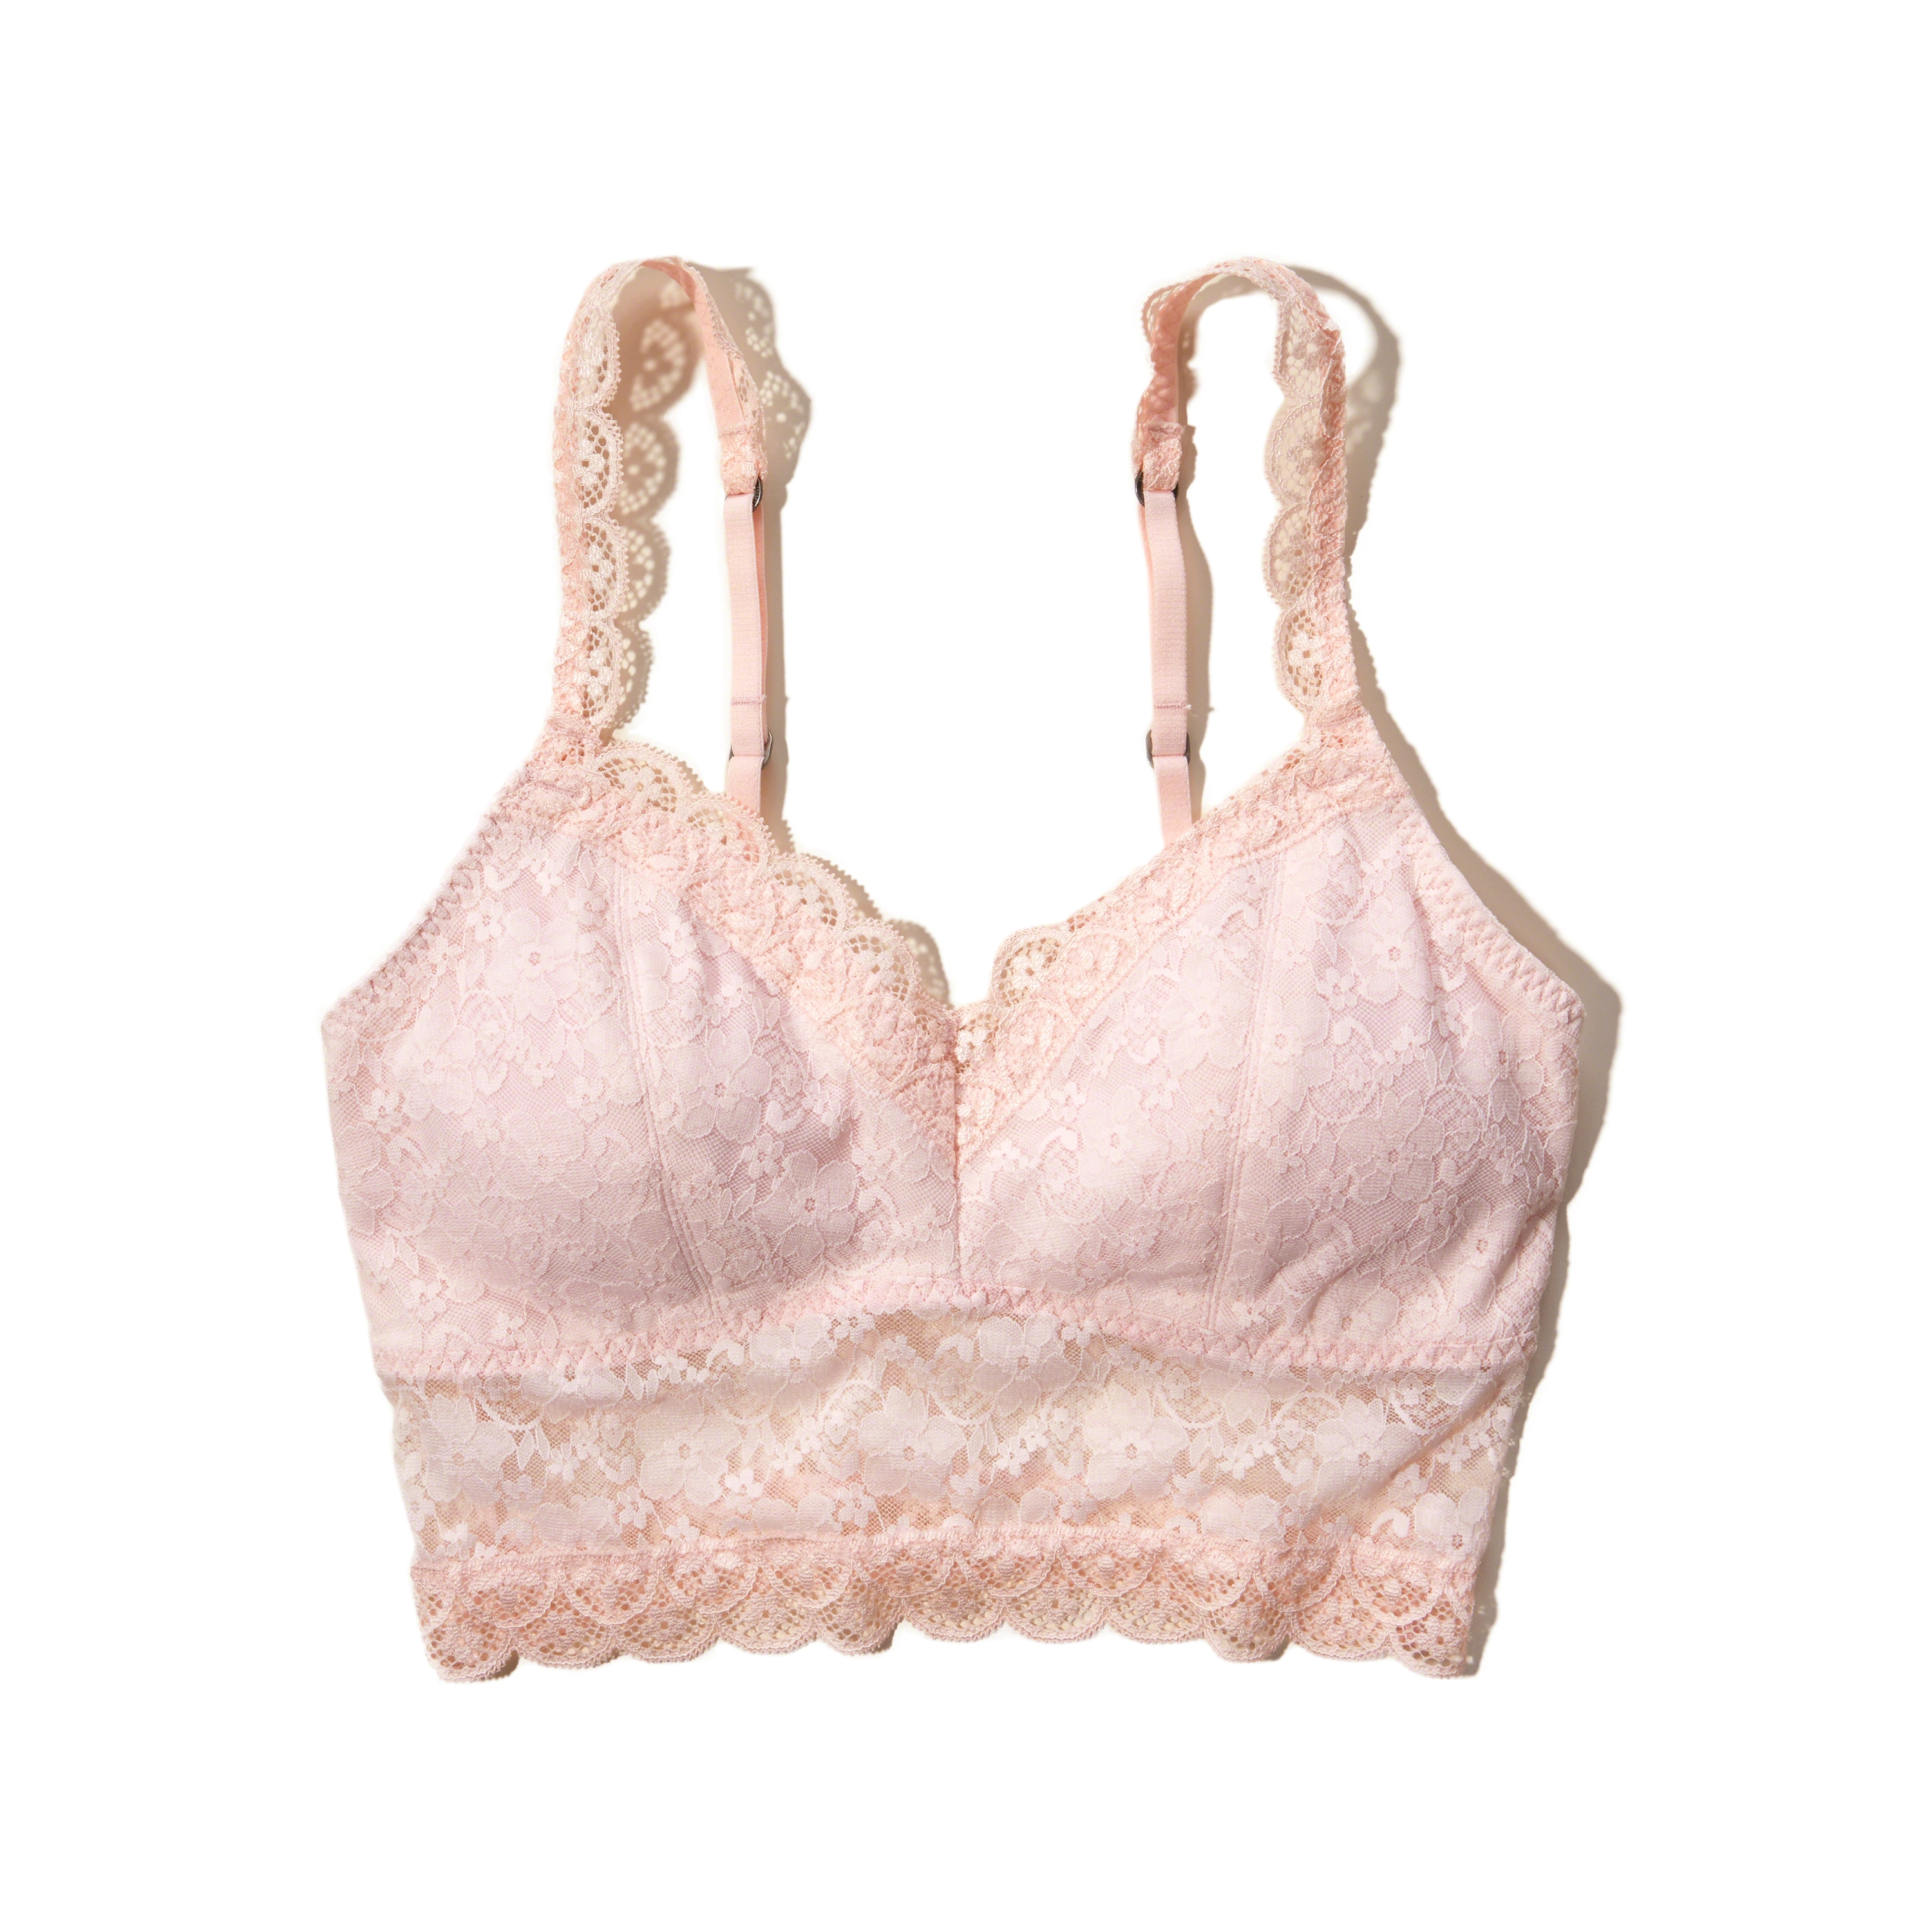 c0b29703a33839 Lyst - Hollister Gilly Hicks Removable-pads Lined Lace Bralette